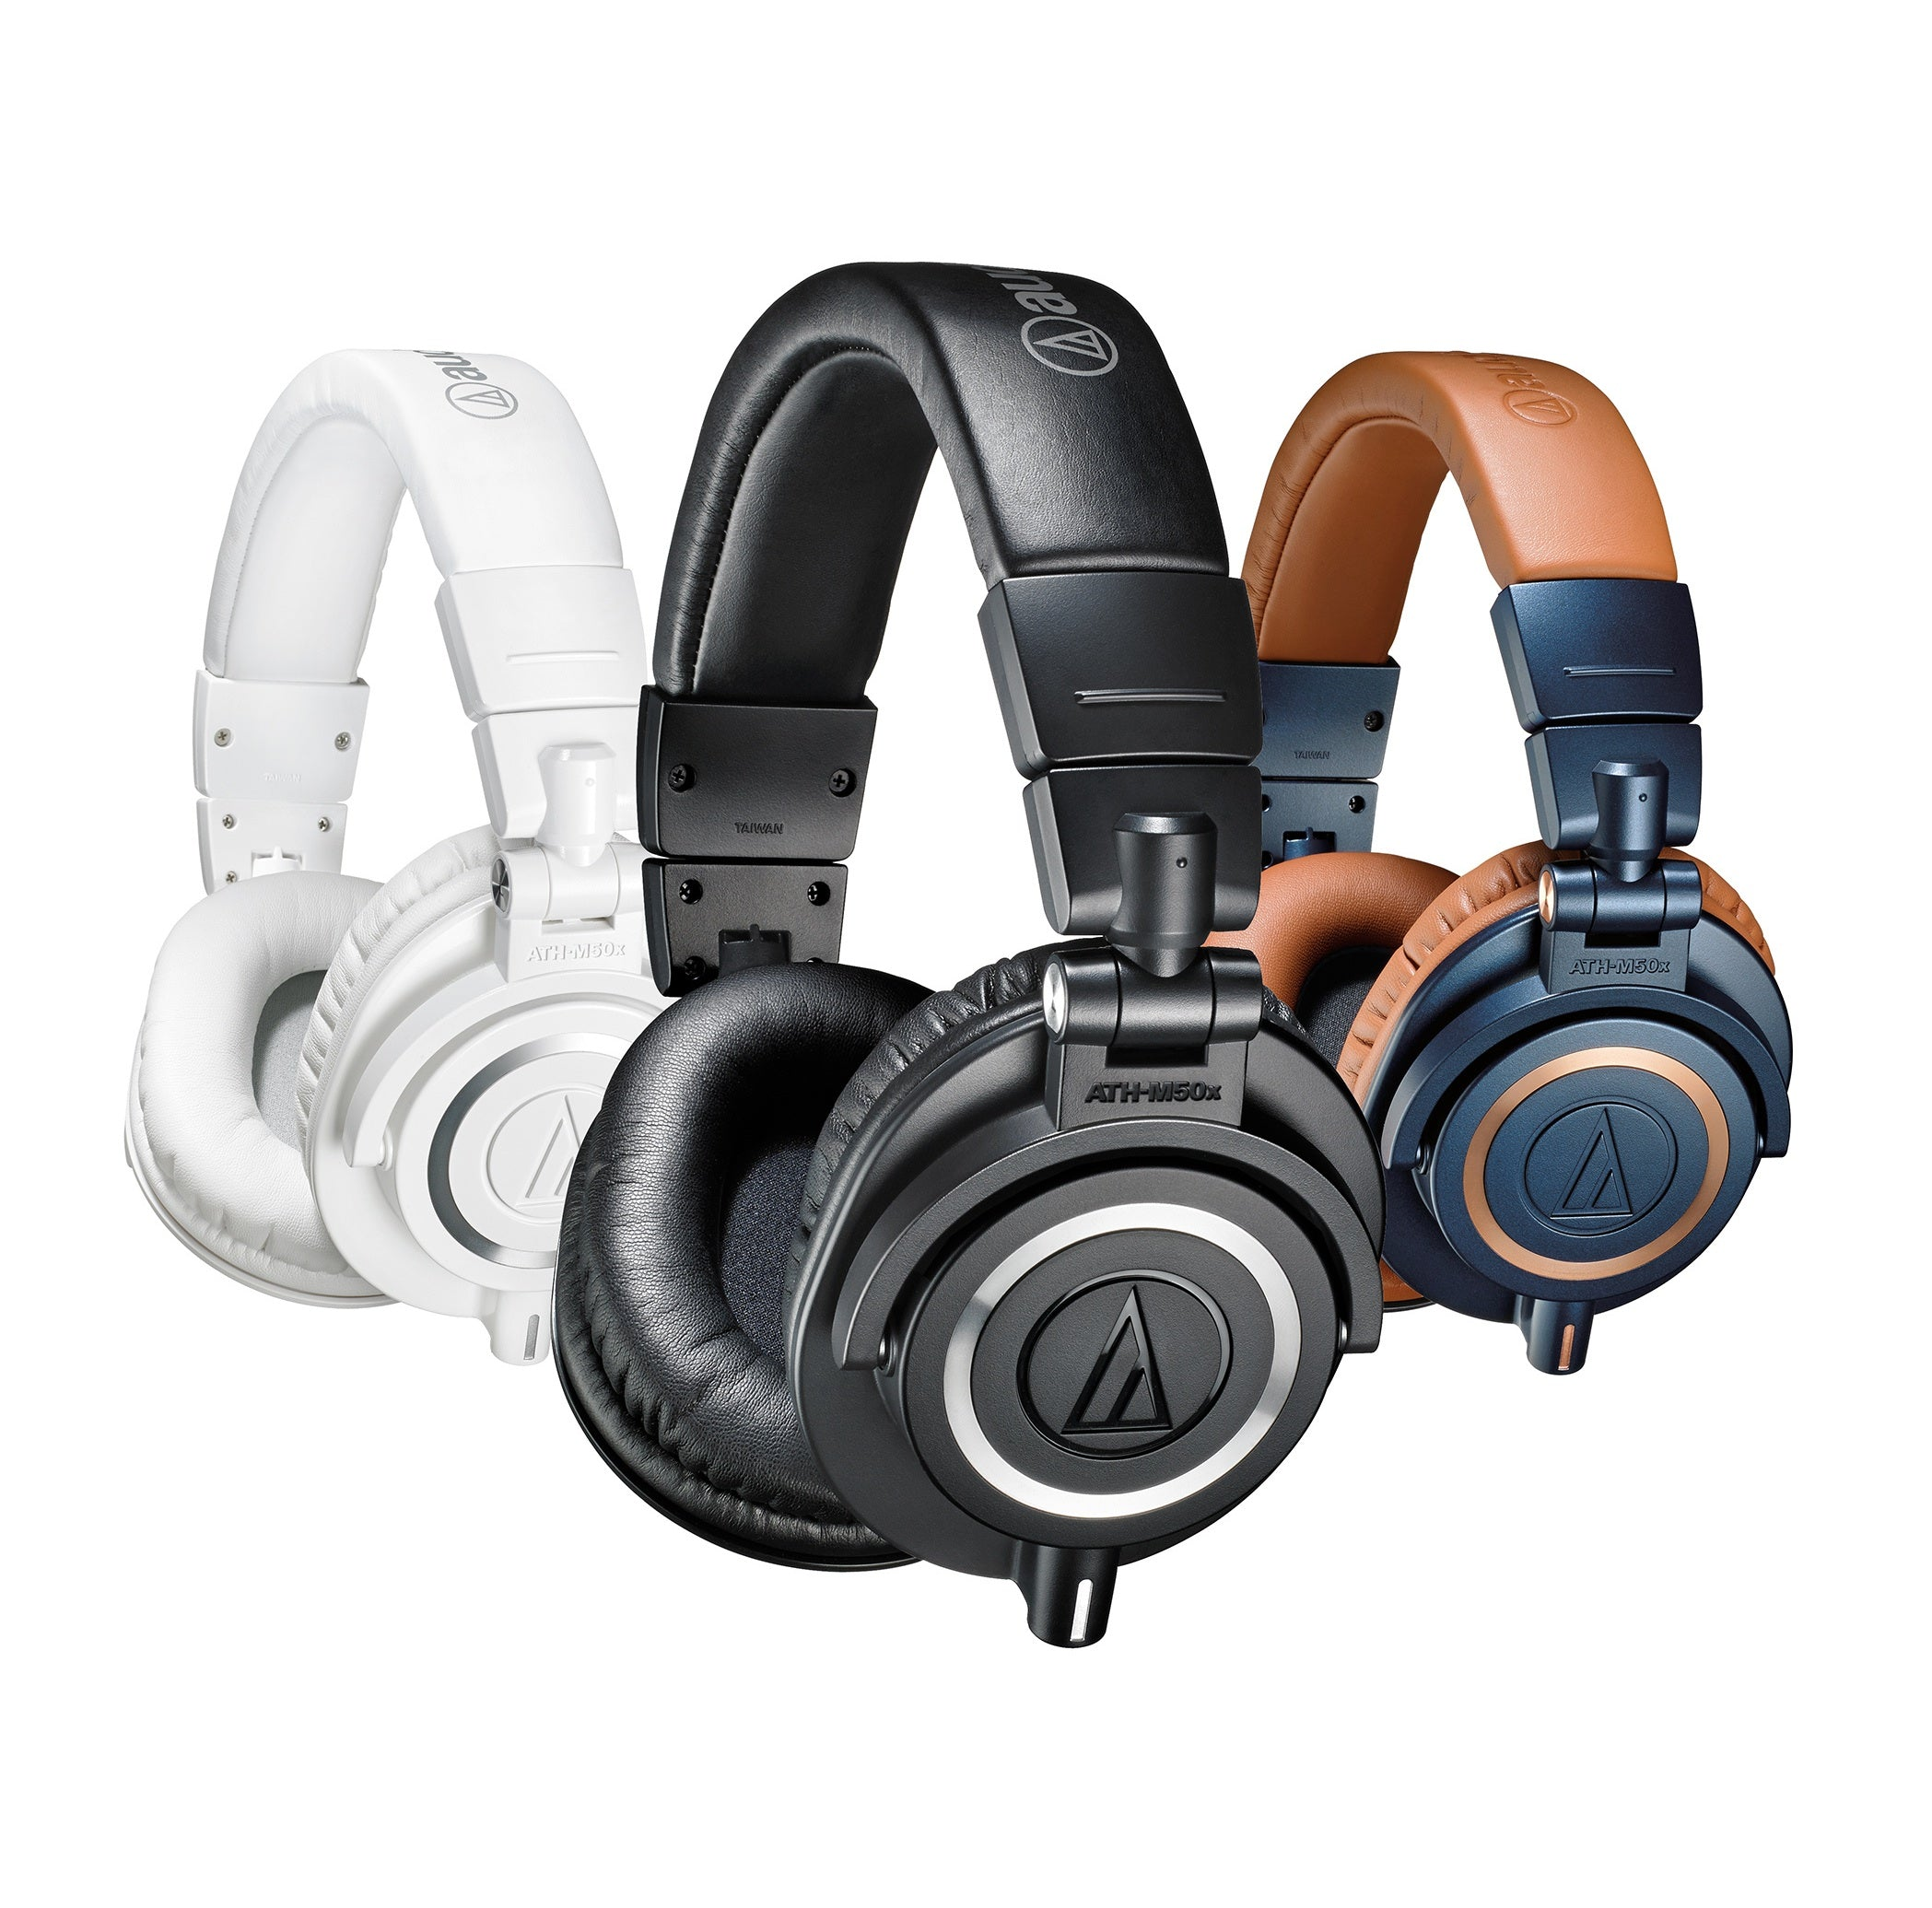 Top 5 Reasons To Buy The Audio-Technica ATH-M50x